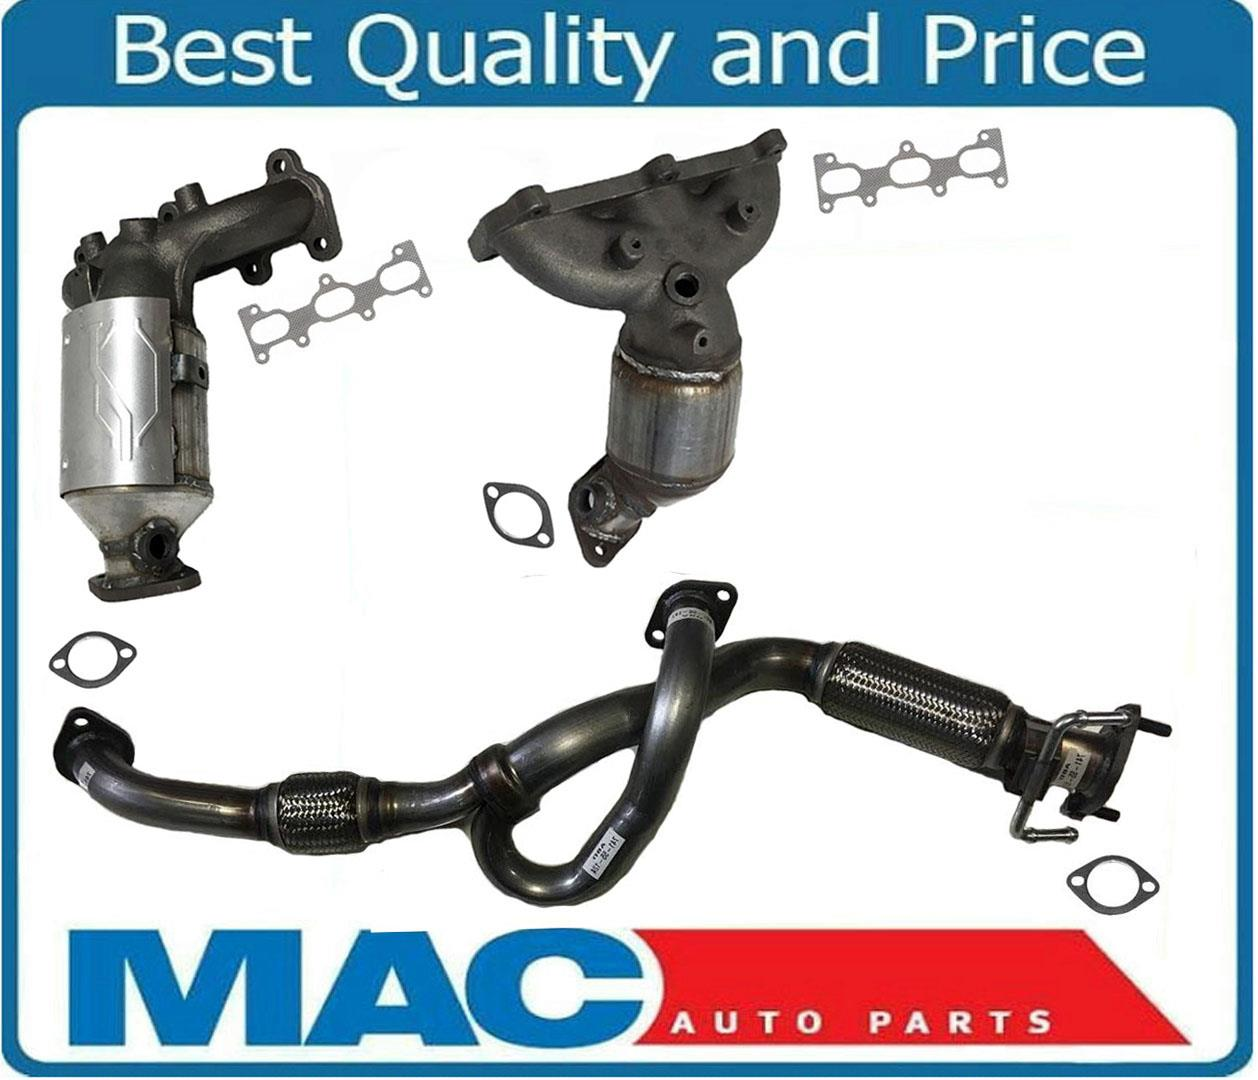 2 Front /& Rear Manifold Catalytic Converter for 2.7L 07-09 Santa Fe 2.7 ONLY